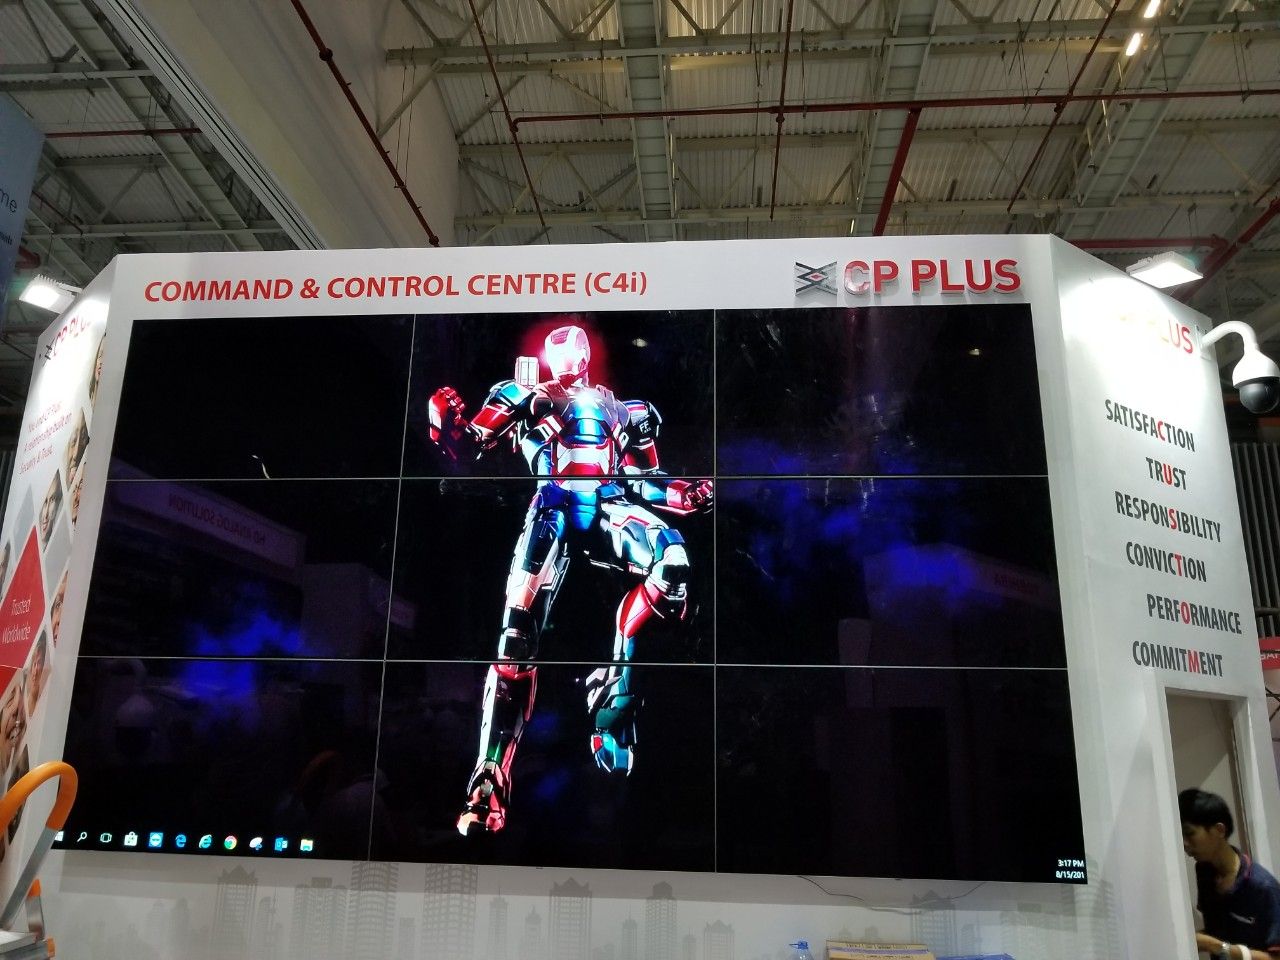 Video wall 3x3 màn hình tivi OLED 55 inches